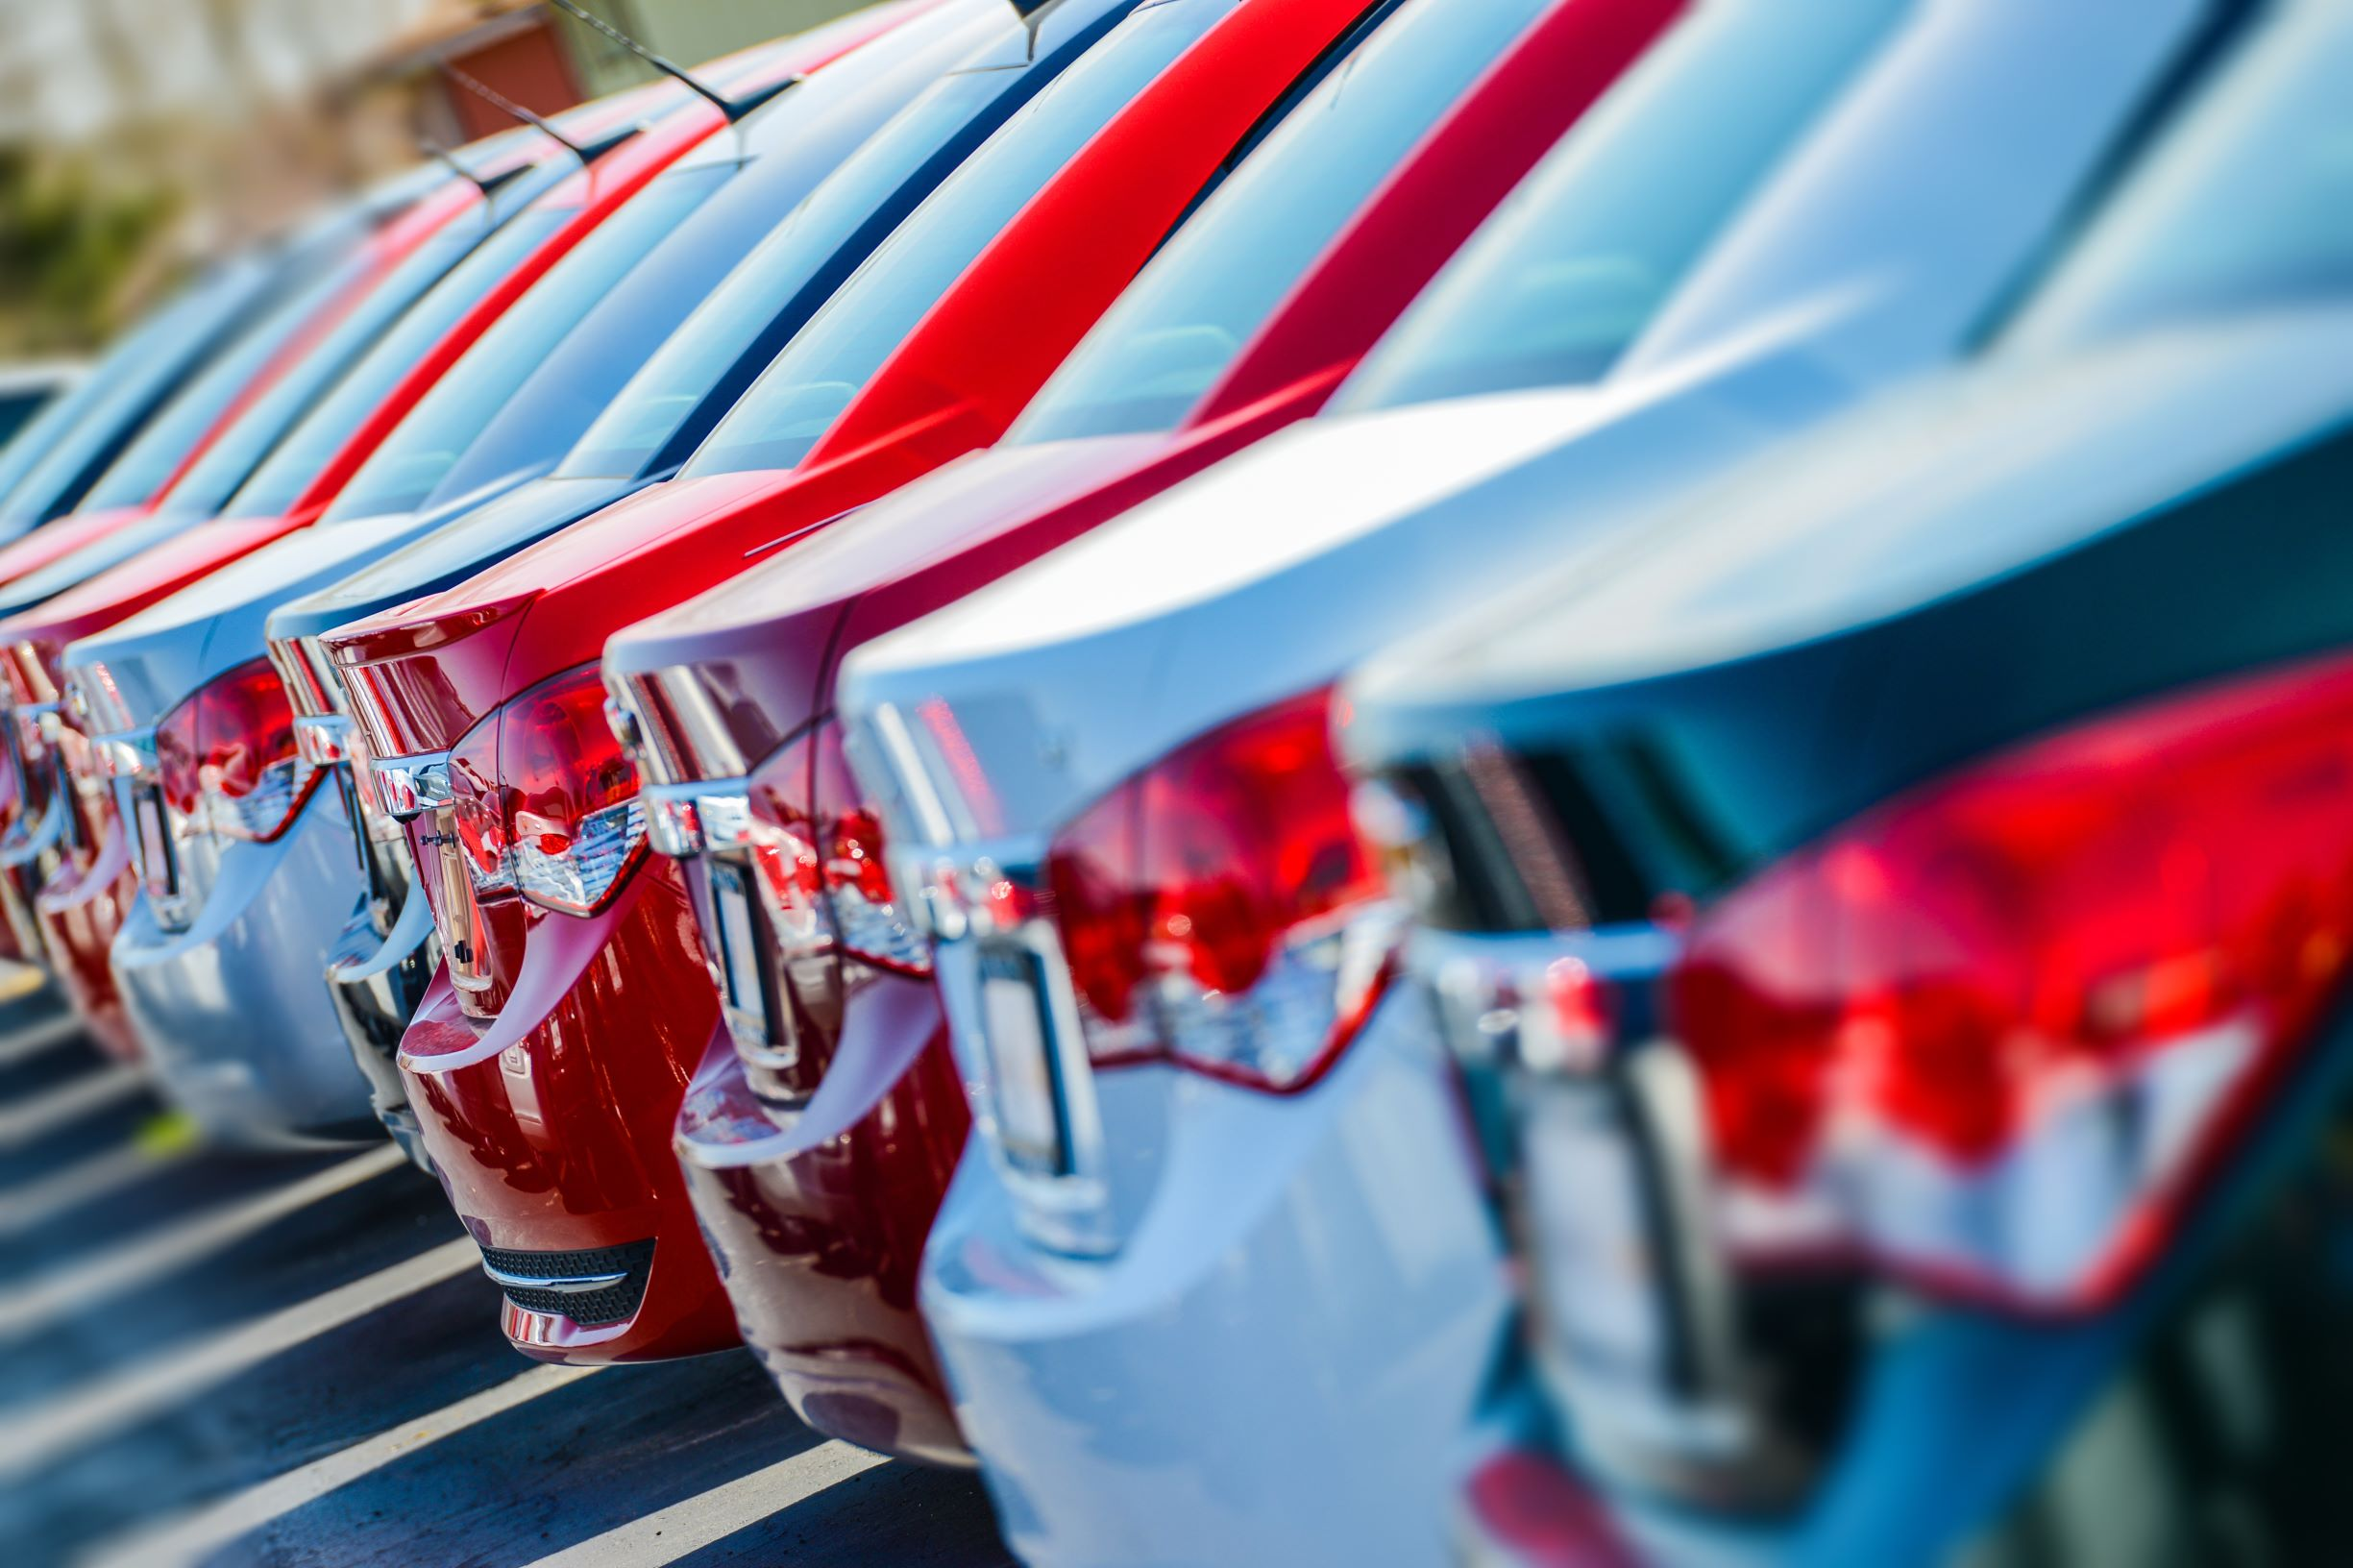 Global automotive industry trends 2020